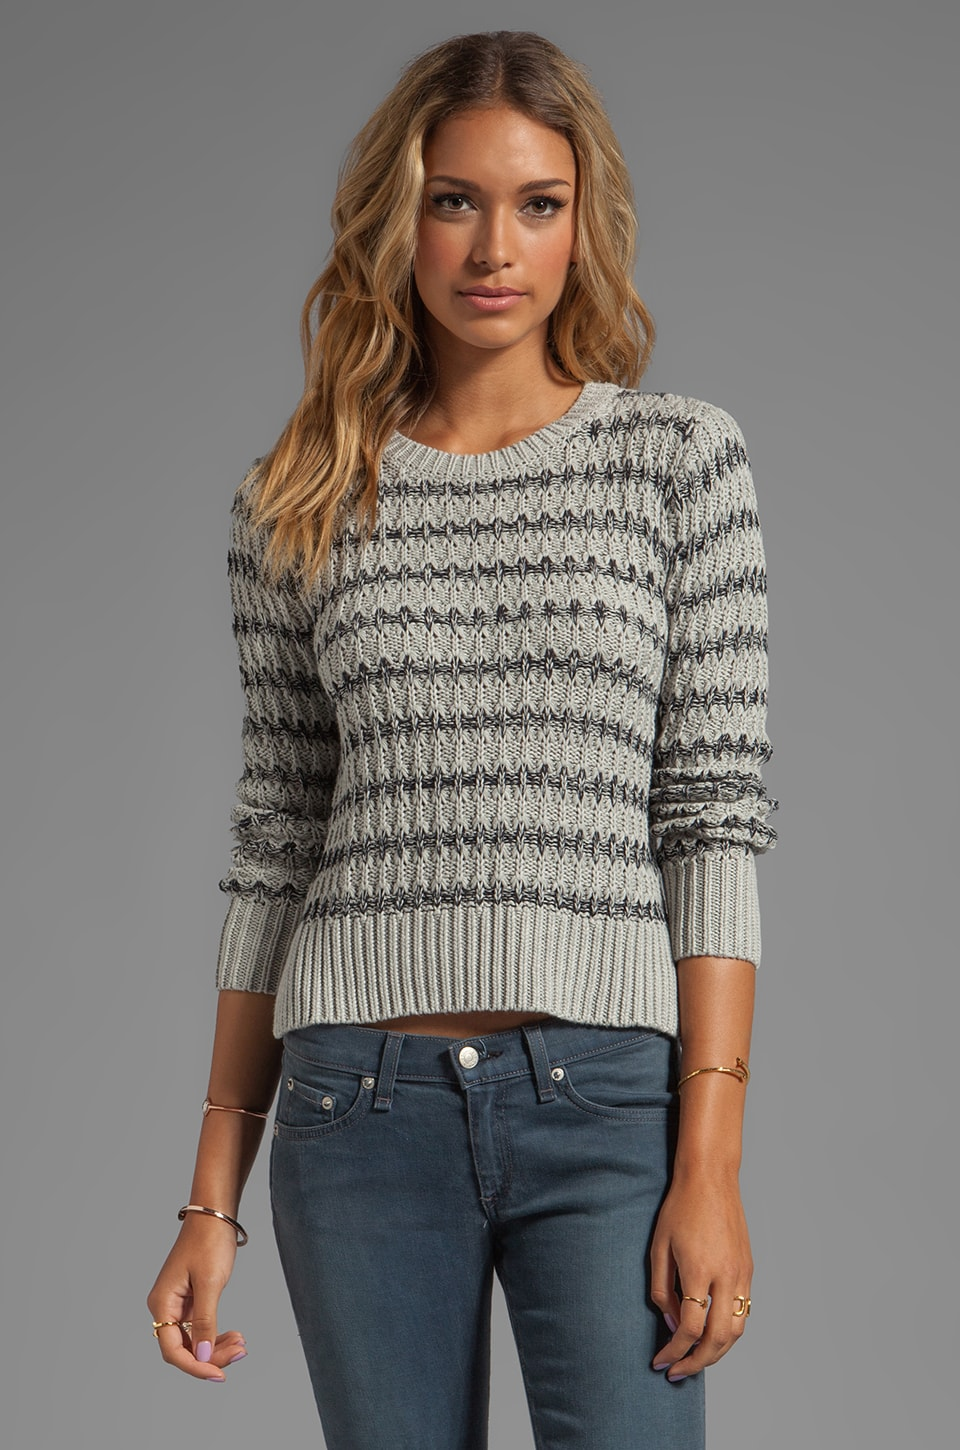 Autumn Cashmere 2-Tone Texture Crew Sweater in Cinderblock/Navy Blue